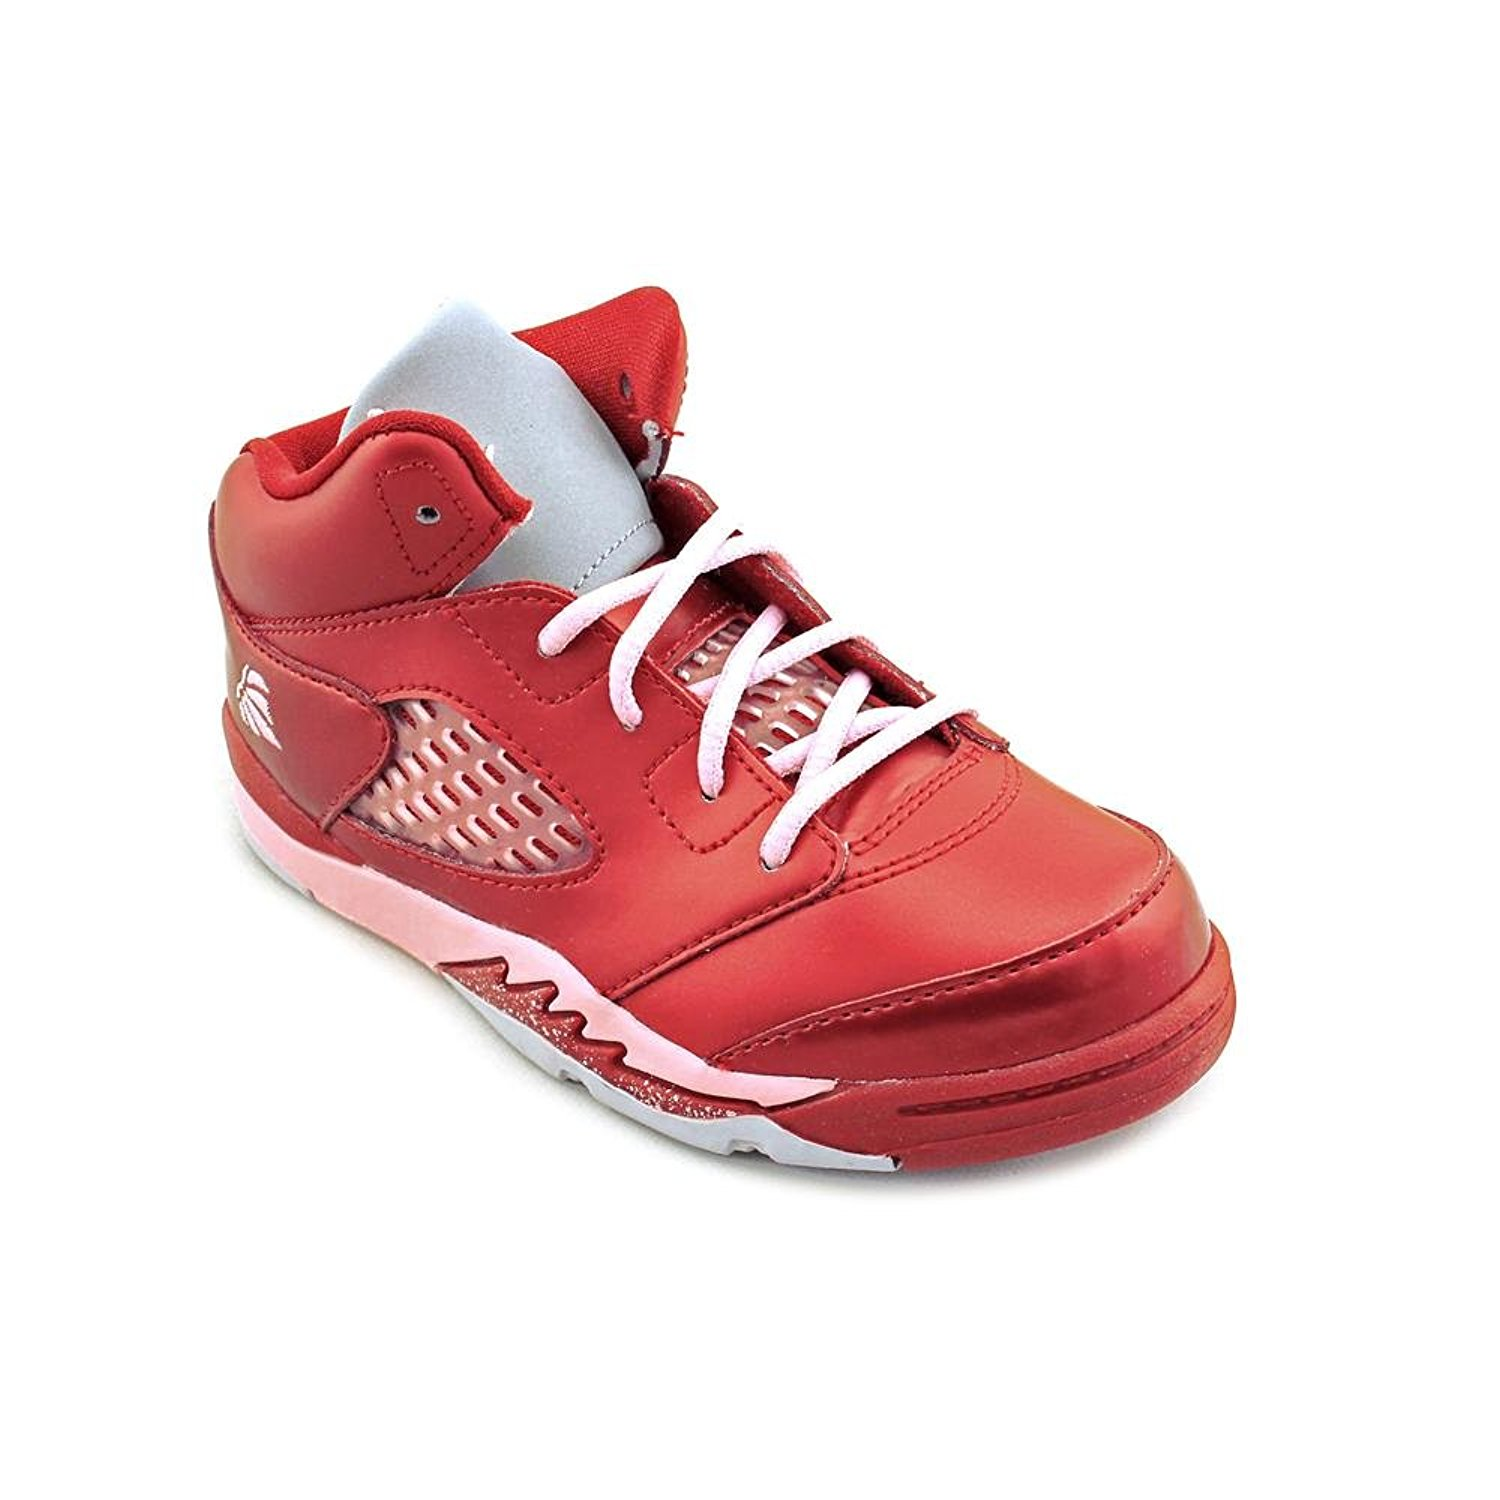 d39513e962207a NIKE Air Jordan 5 Retro (GS) Valentines Day Girls Basketball Shoes  440892-605